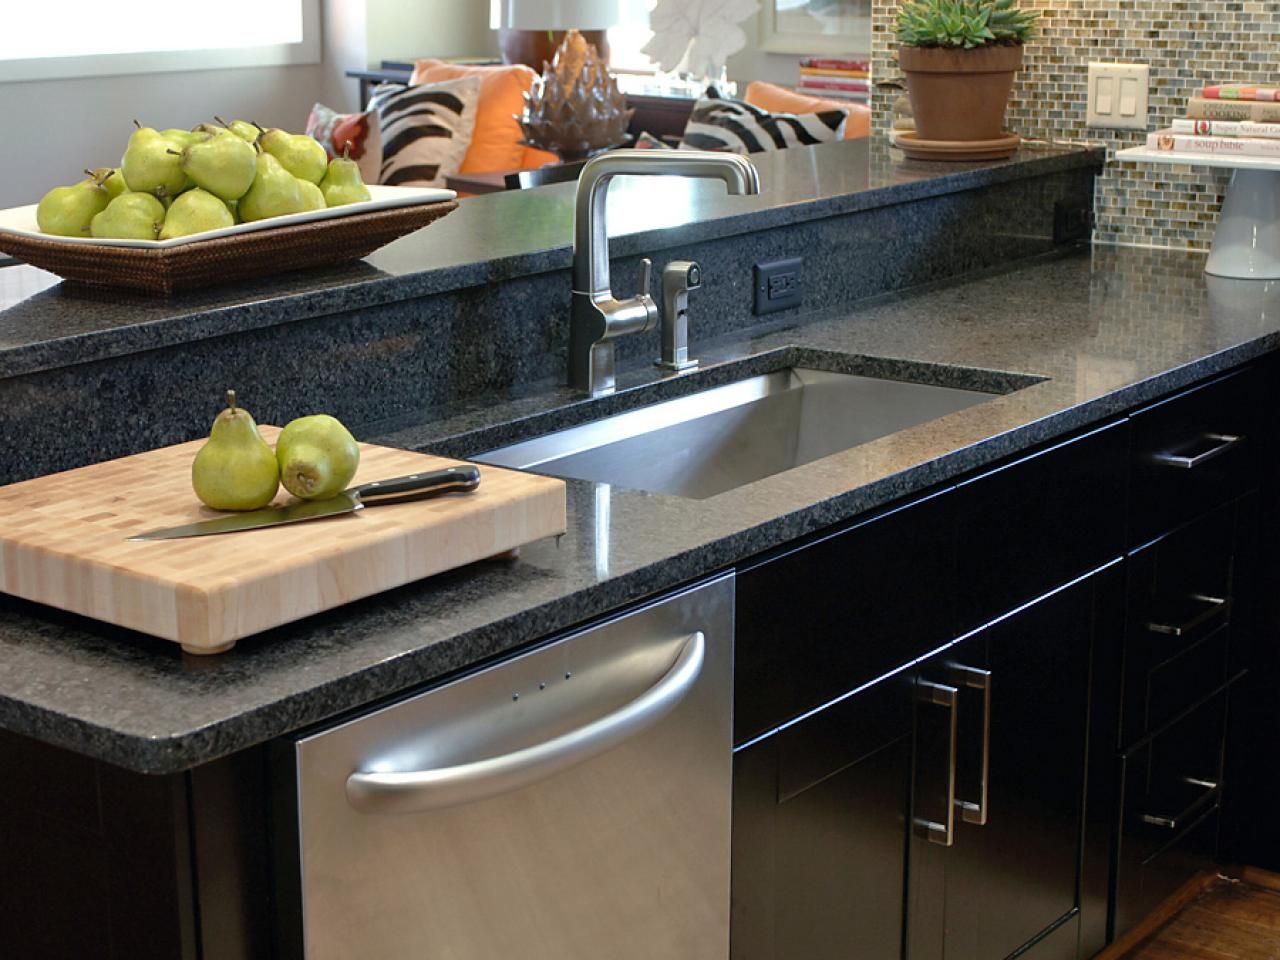 Versatile durable seamless installation and equipped with a warranty solid surface countertops are a win win